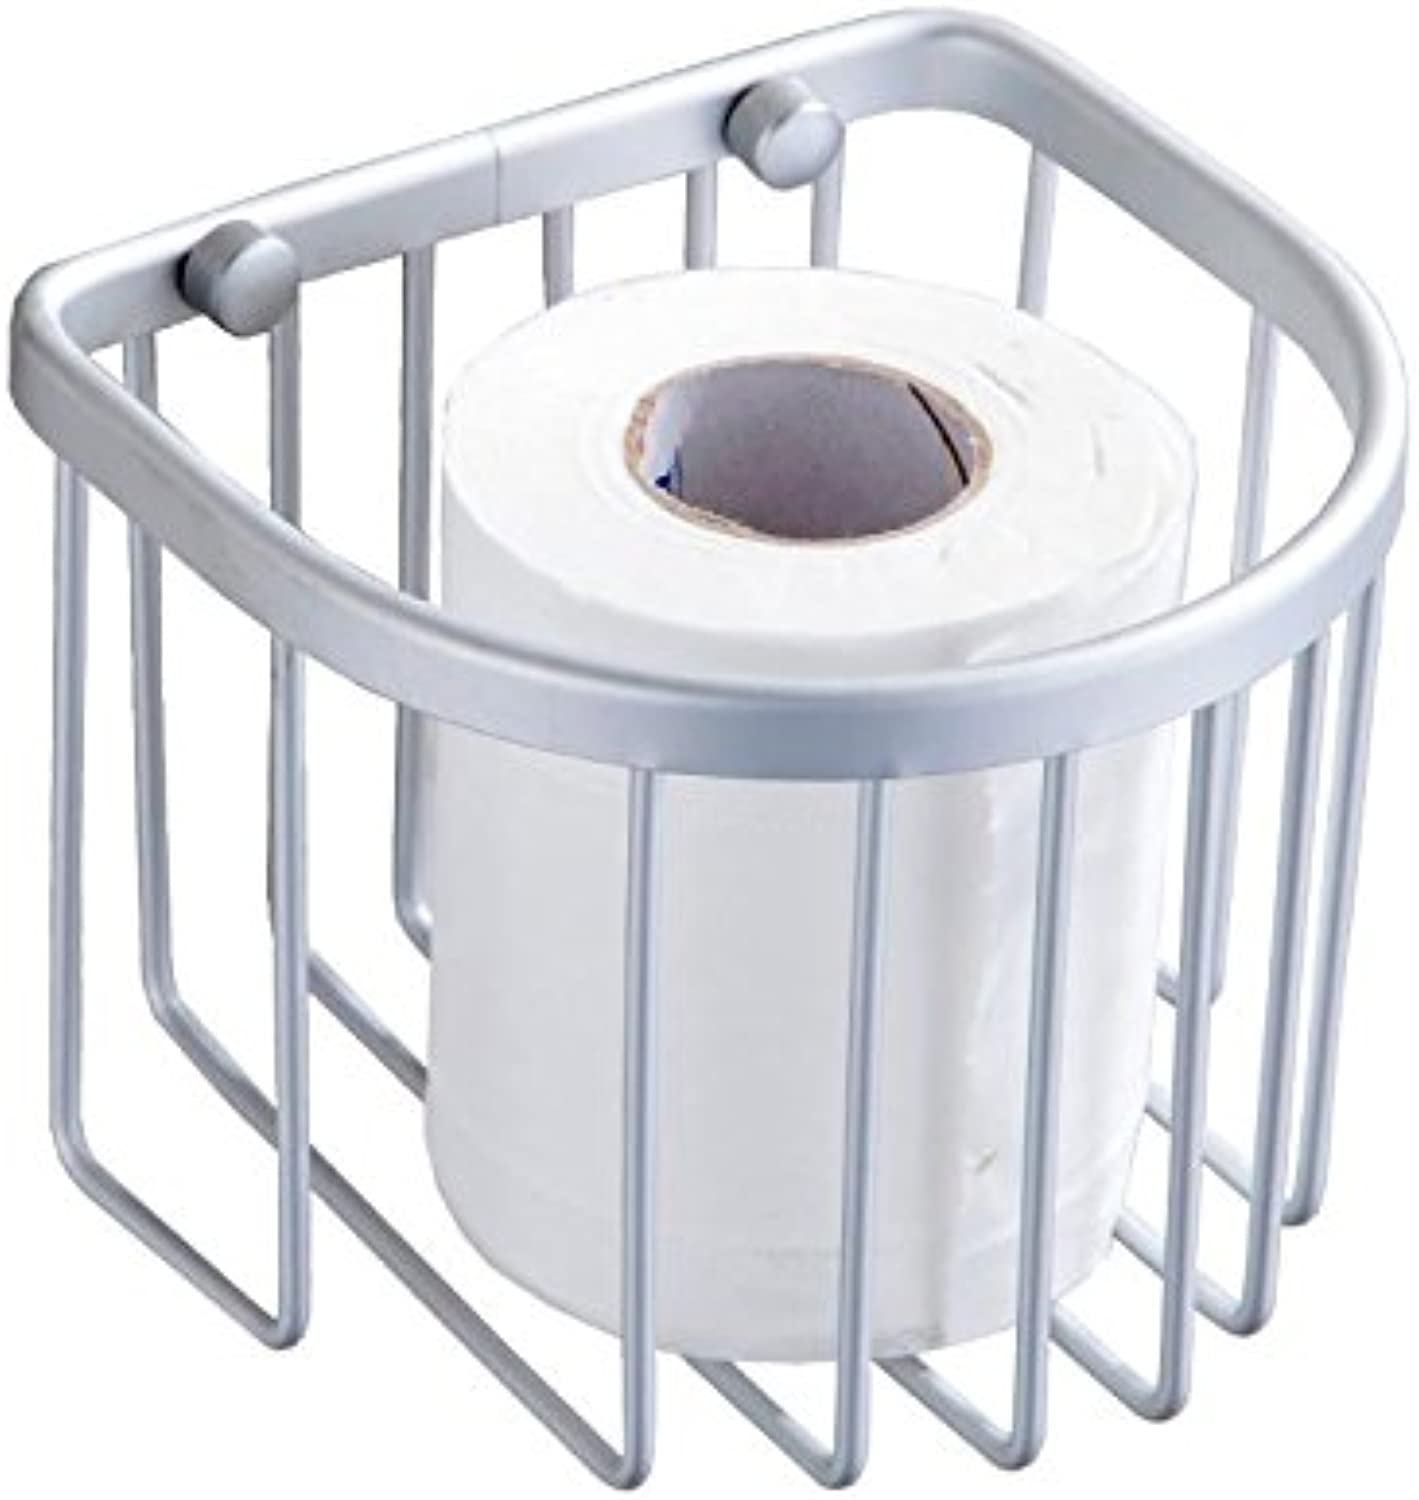 Hardwareh Space Aluminum Roll Holder Short Roll Basket Basket Bathroom Toilet Paper Holder Box Bathroom Hardware Accessoriesmodern Simple and Durable Home Decoration Classic Quality Assurance